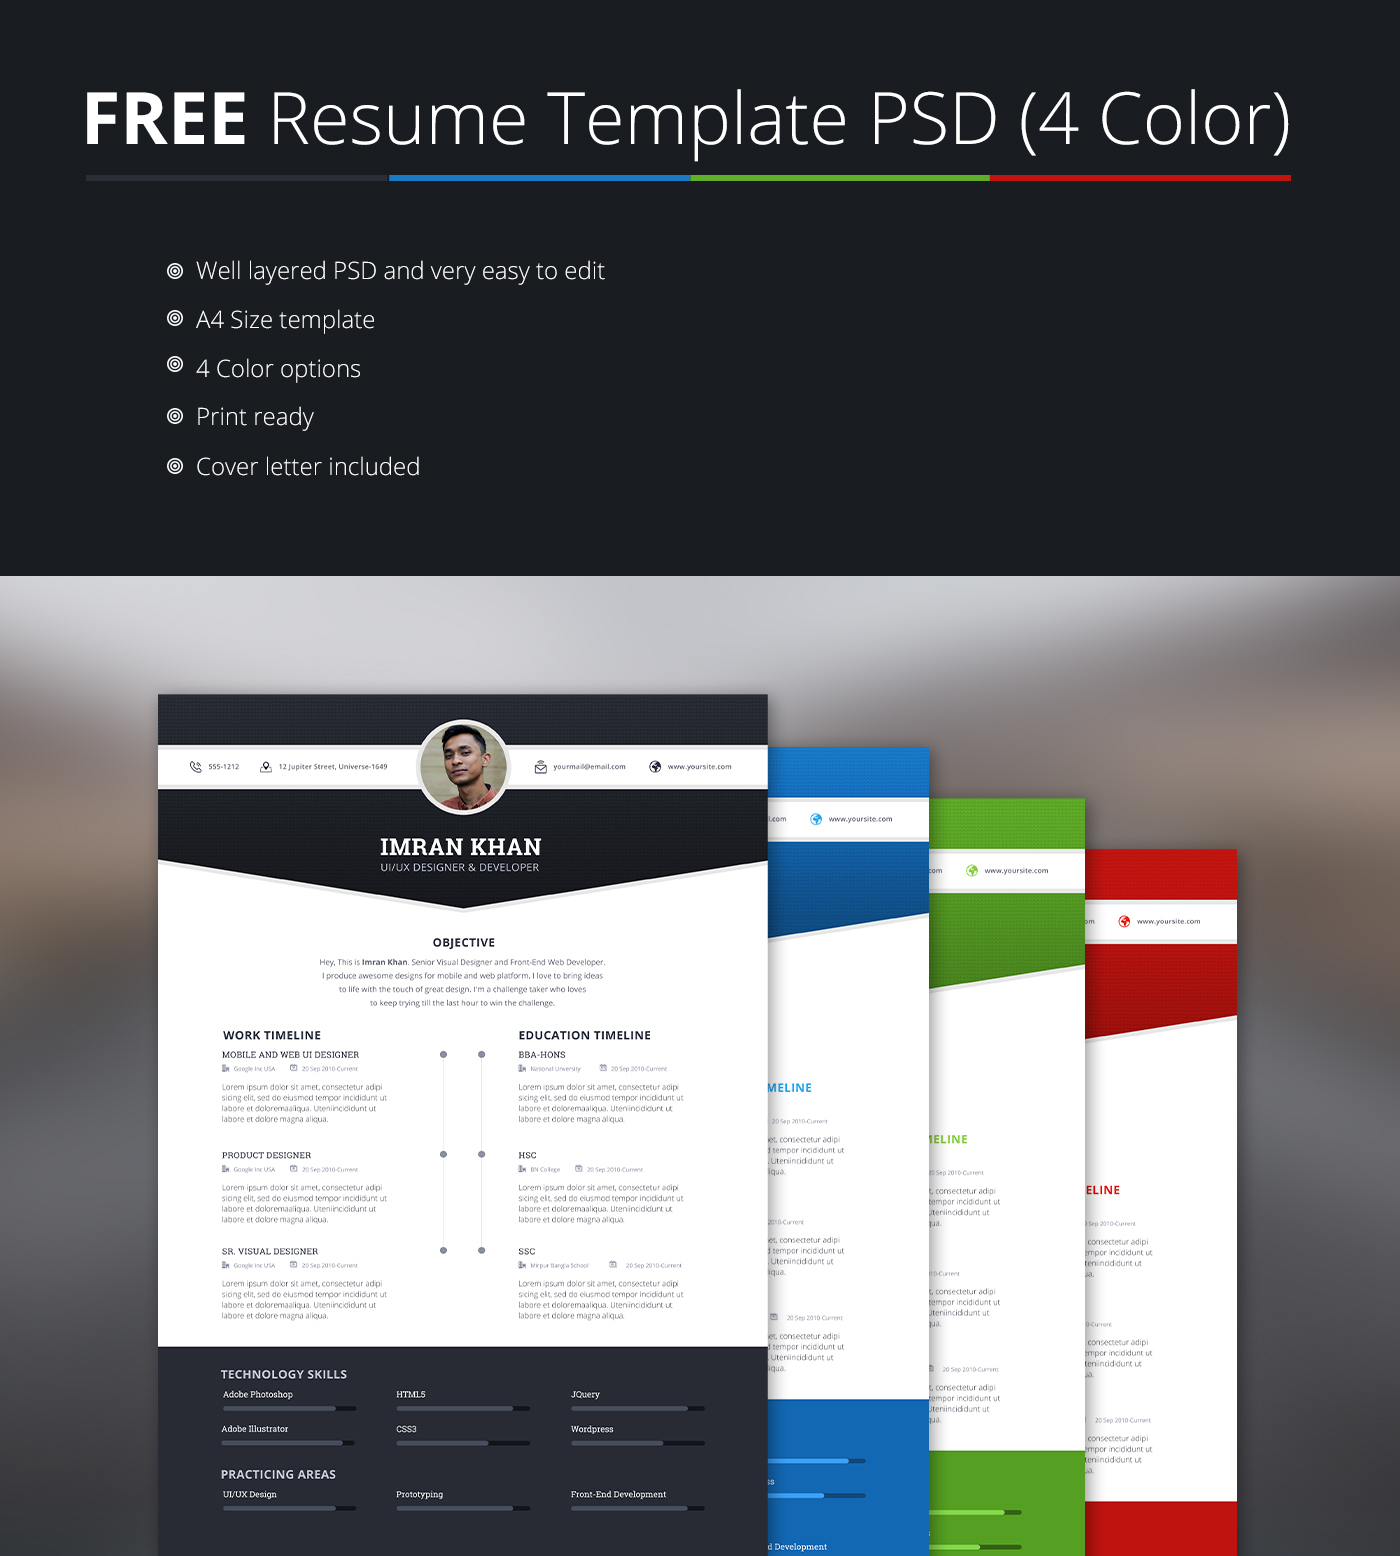 free resume template psd 4 colors on behance - Resume Template Color